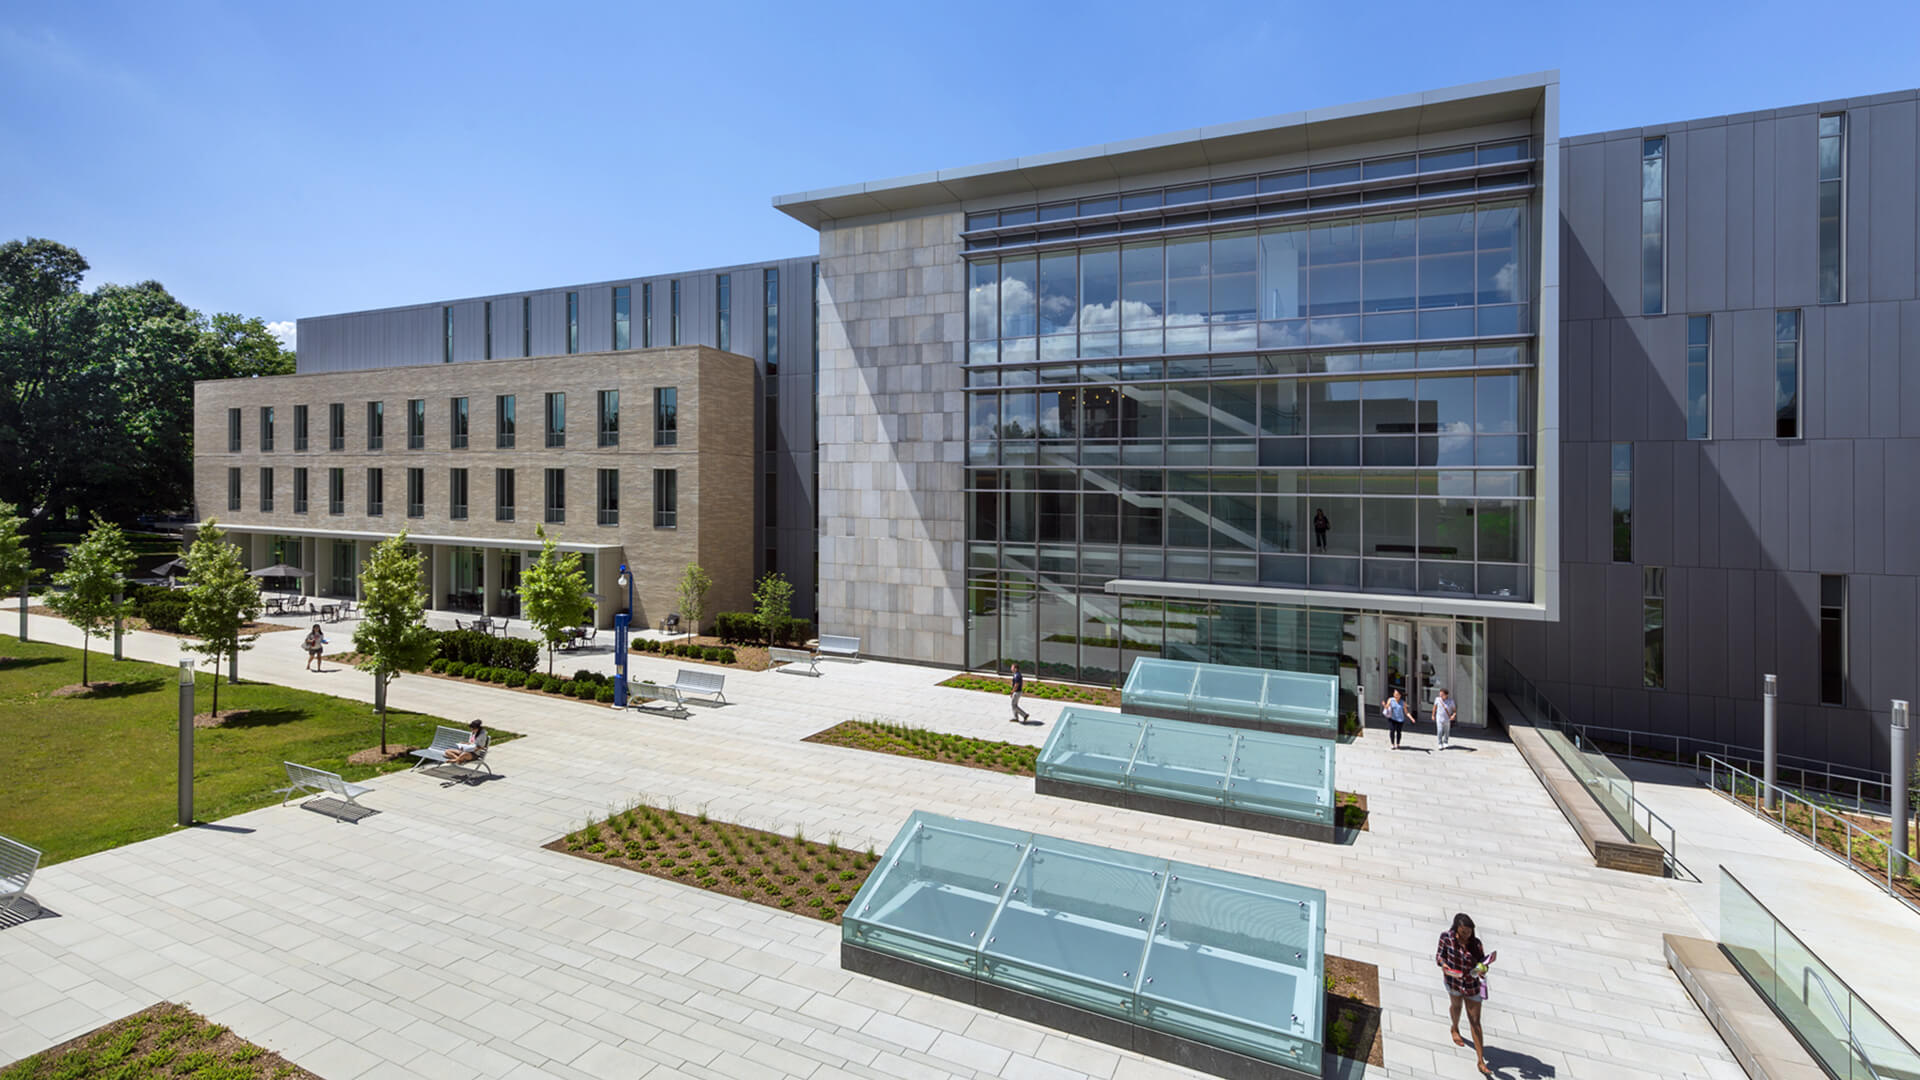 American University's Washington College of Law